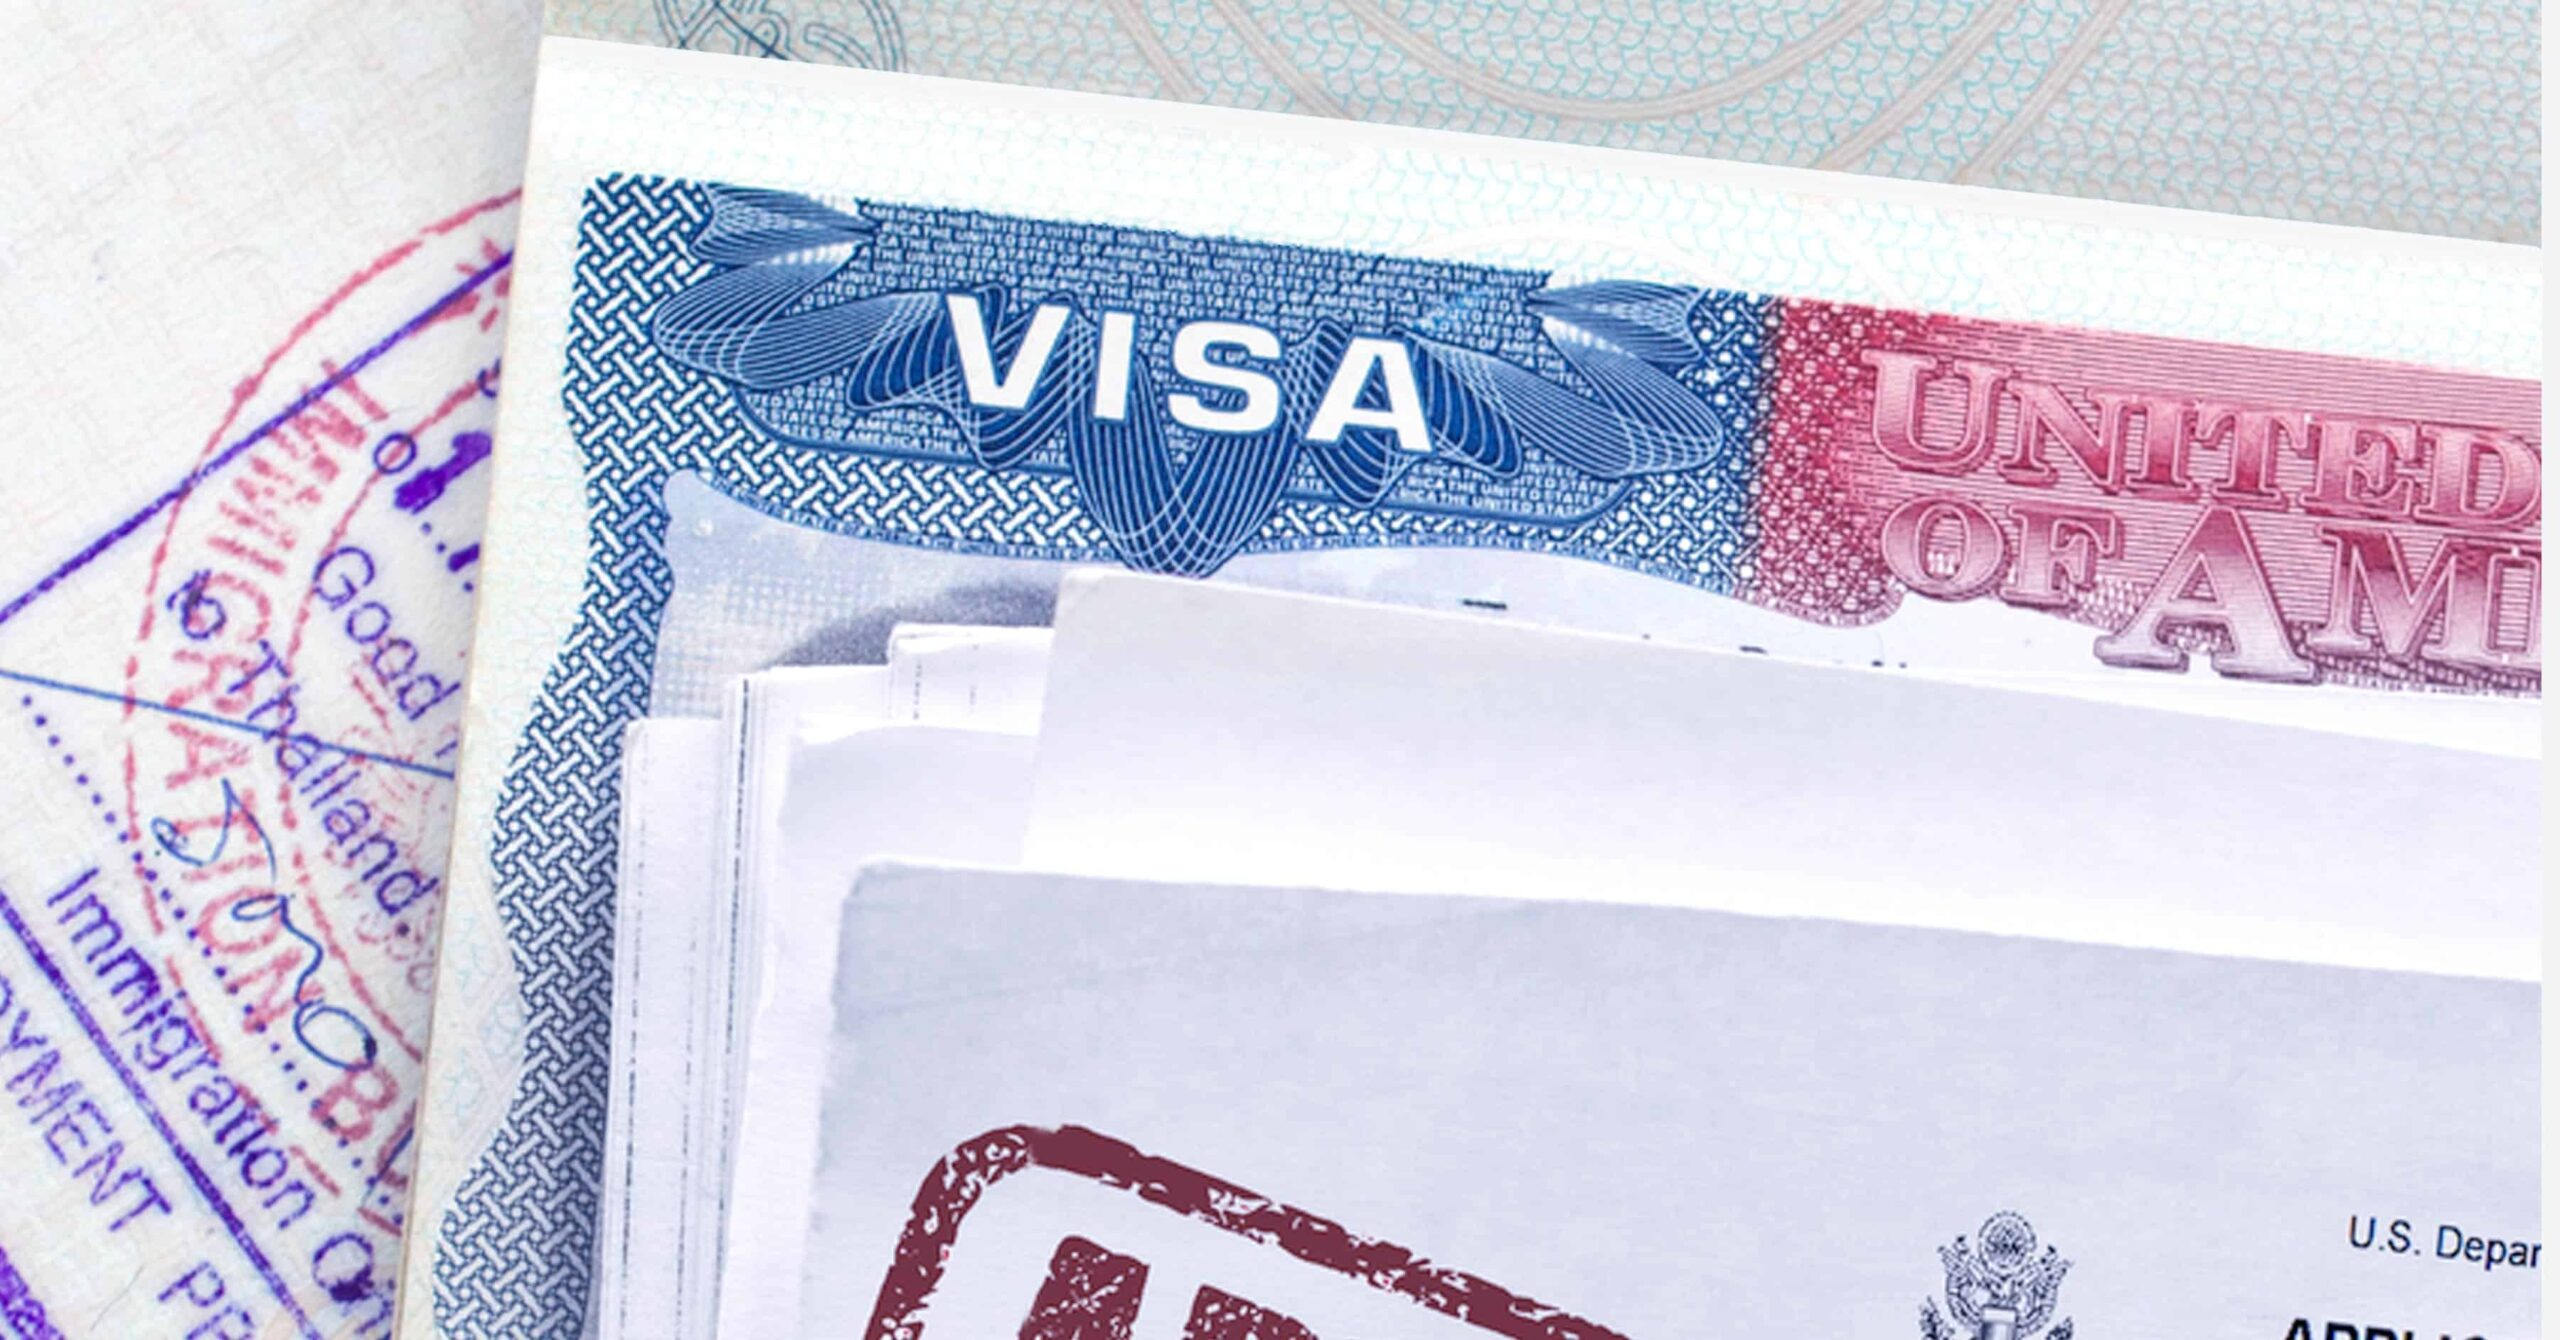 Blog-I-How-to-Obtain-a-Work-Visa-in-Colombia